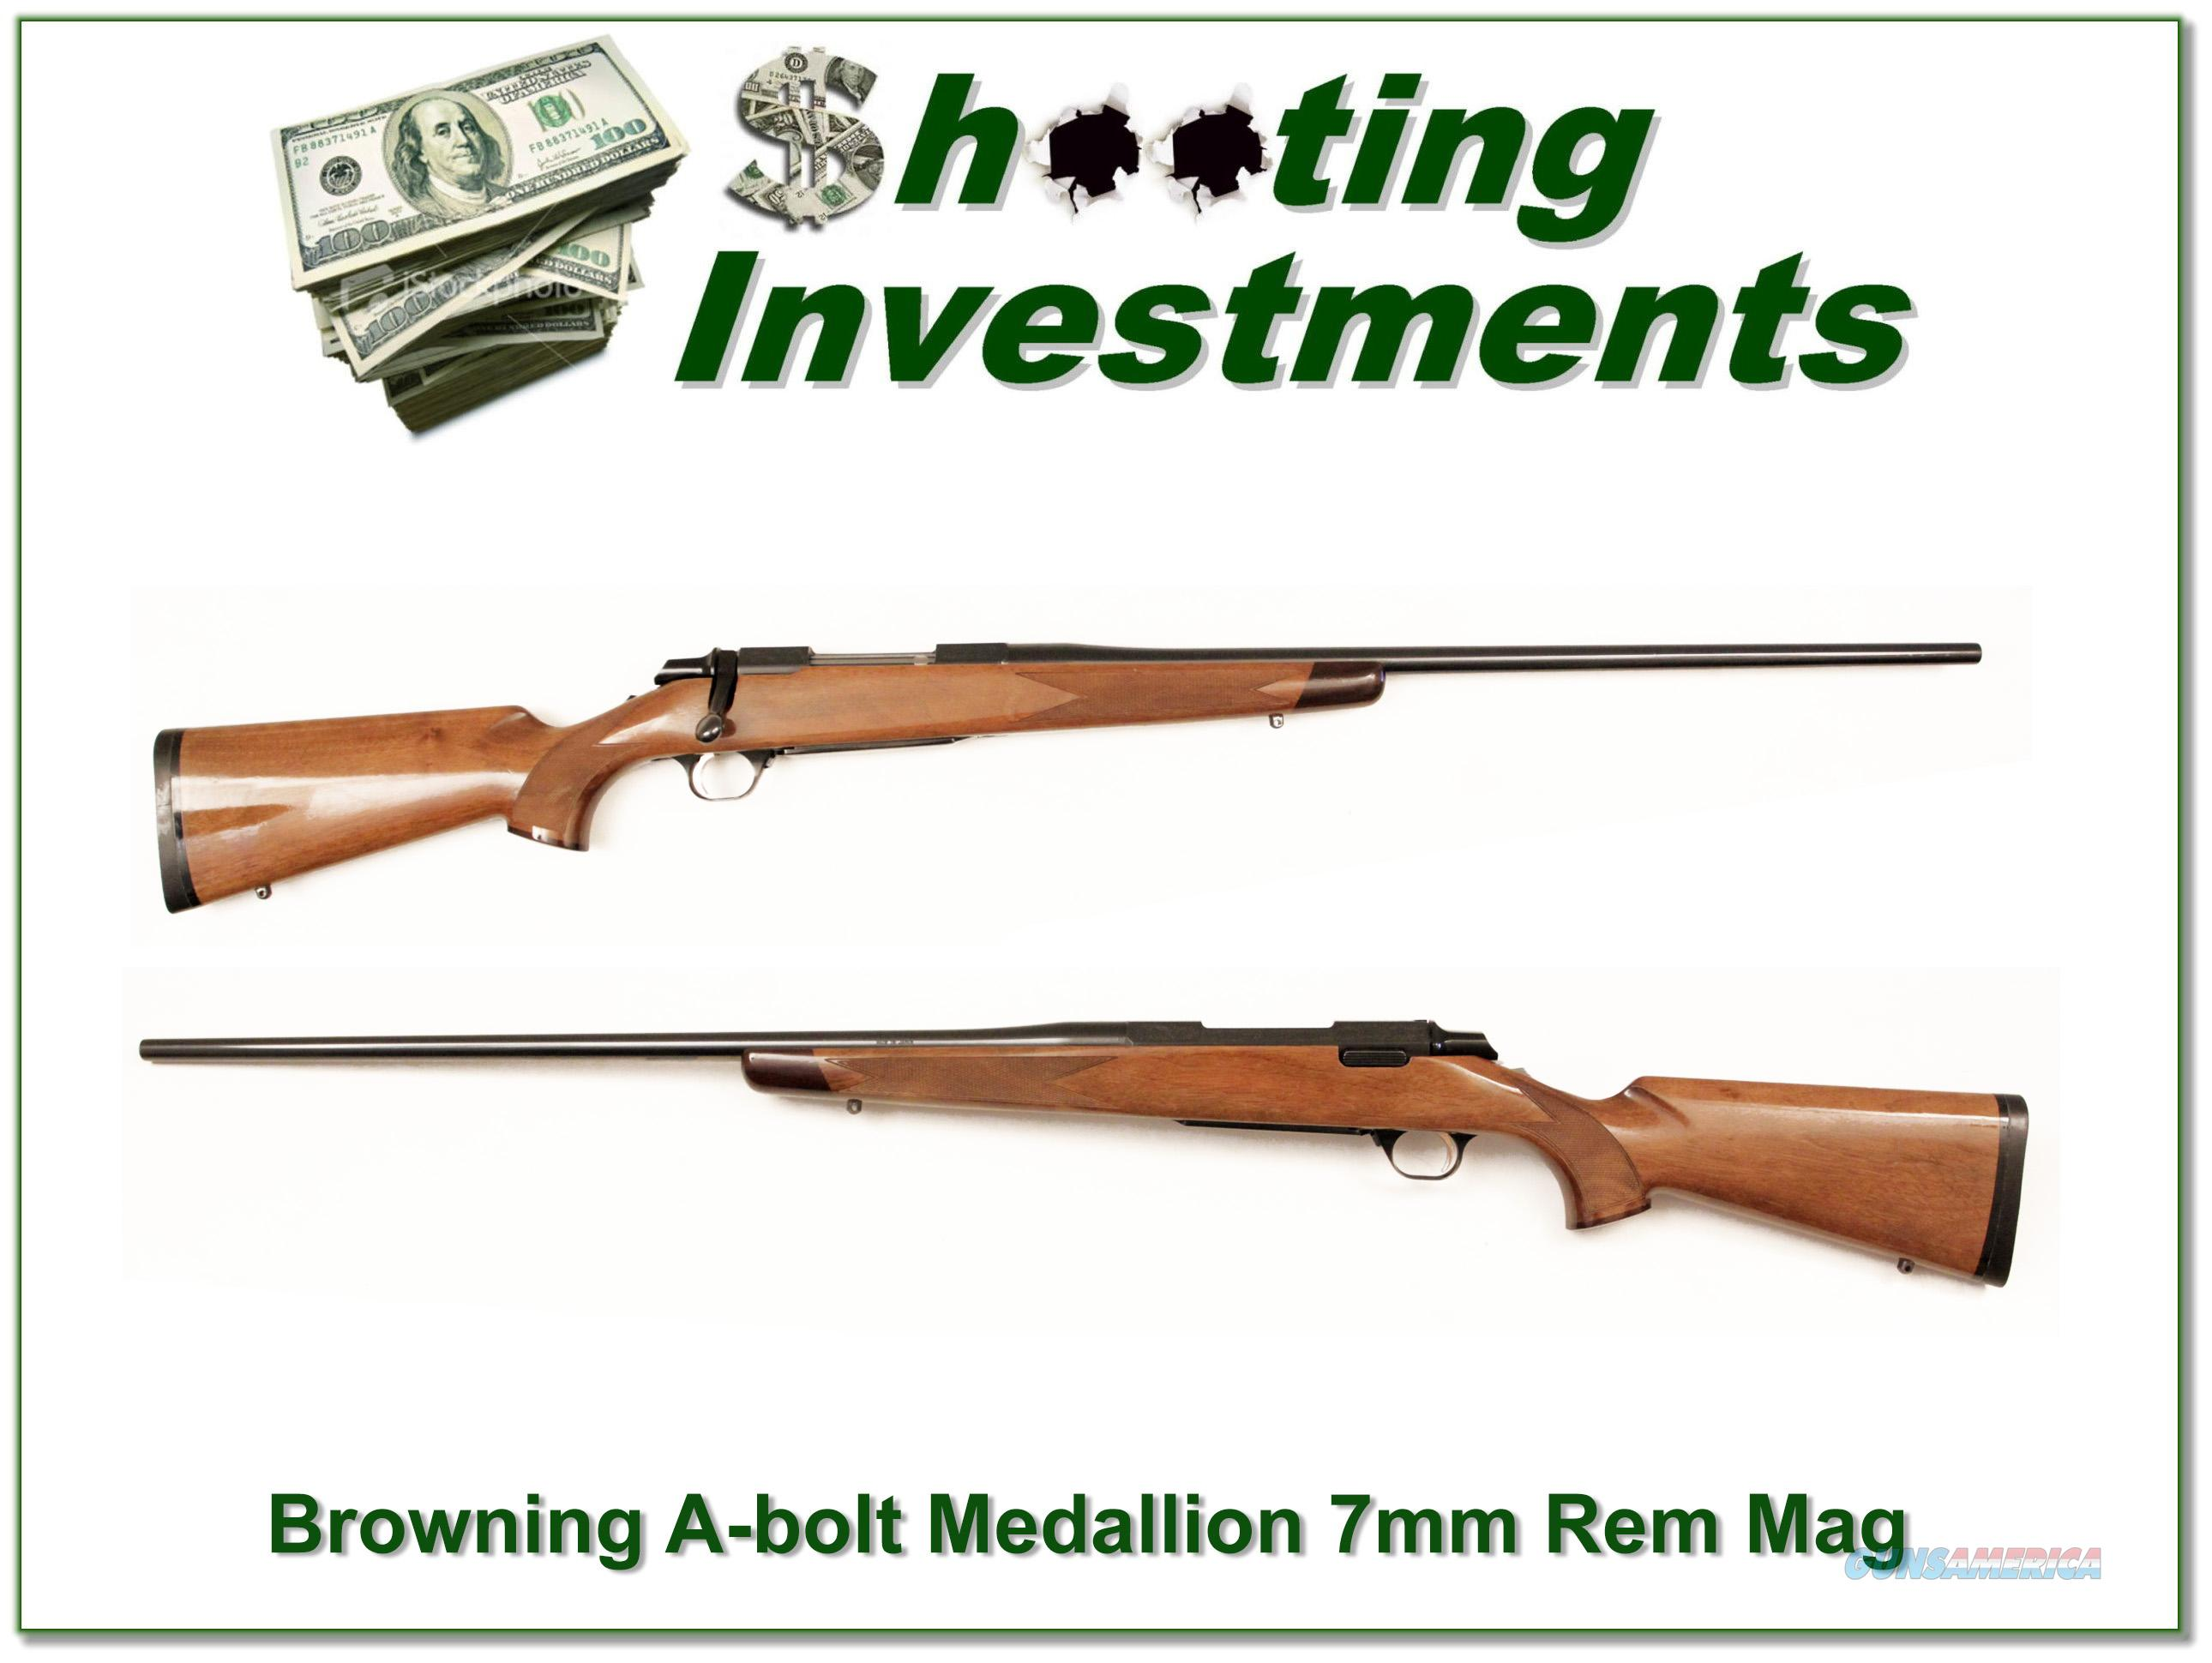 Browning A-bolt Medallion 7mm Rem Mag  Guns > Rifles > Browning Rifles > Bolt Action > Hunting > Blue